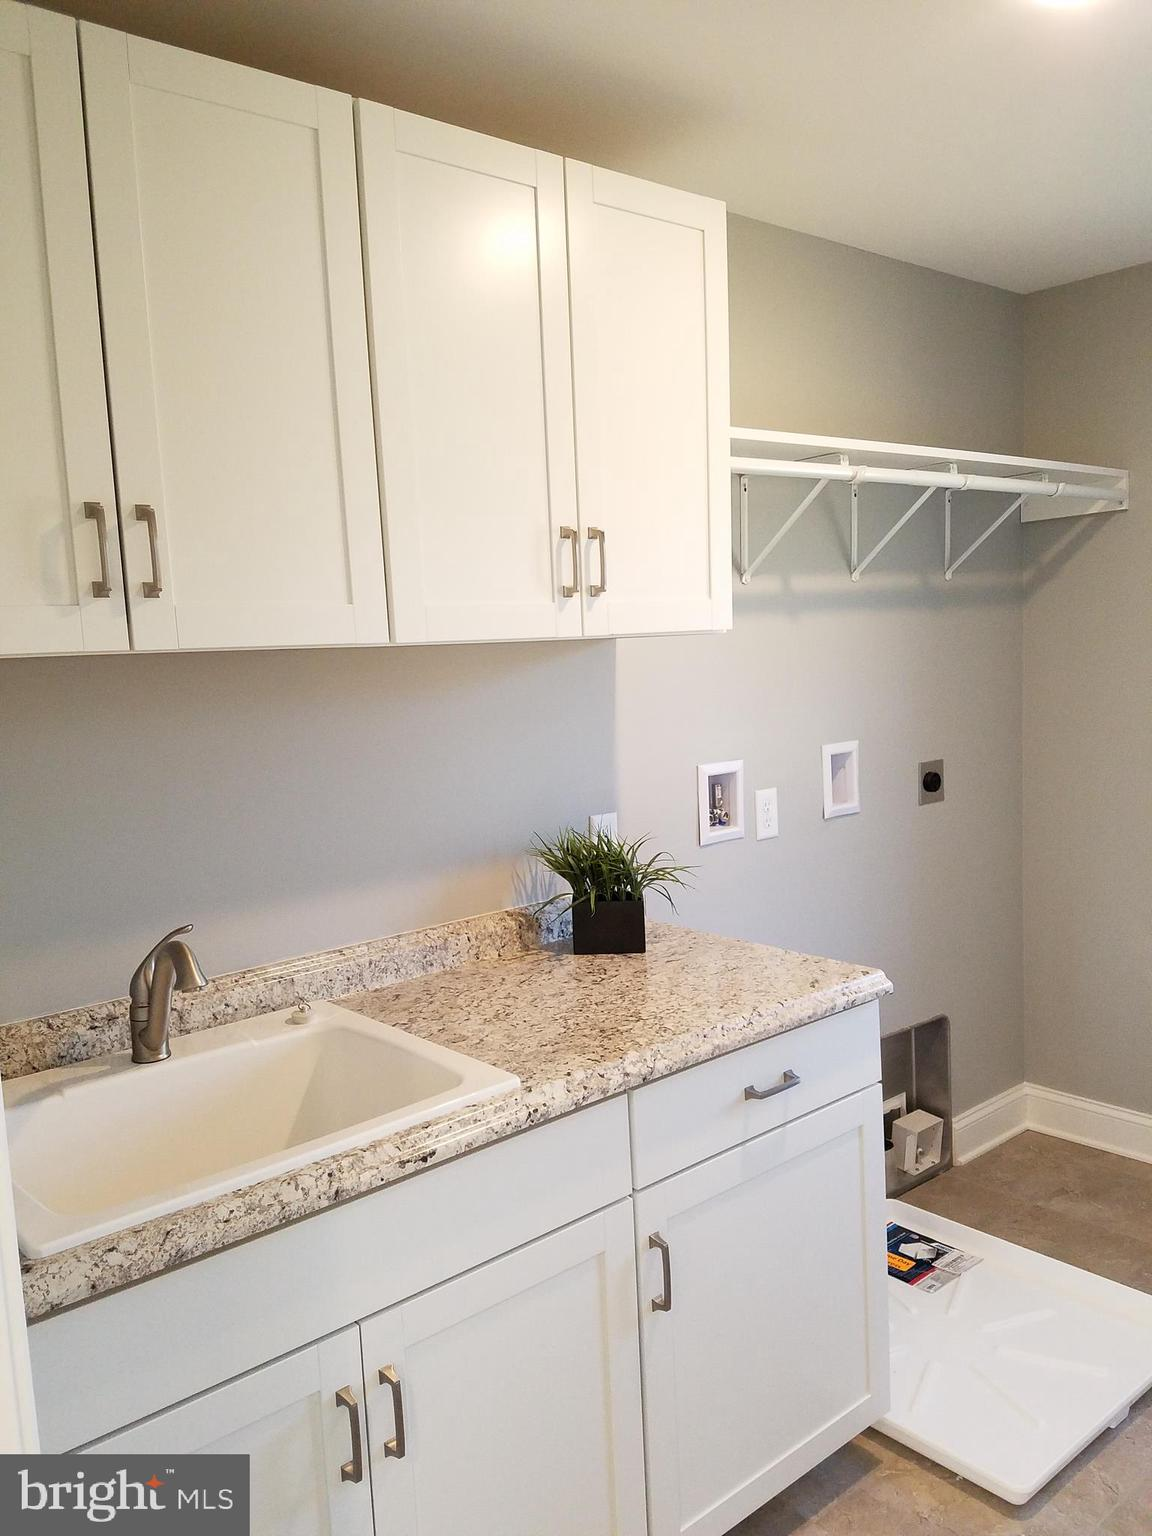 2nd floor laundry w/ sink and cabinets for storage